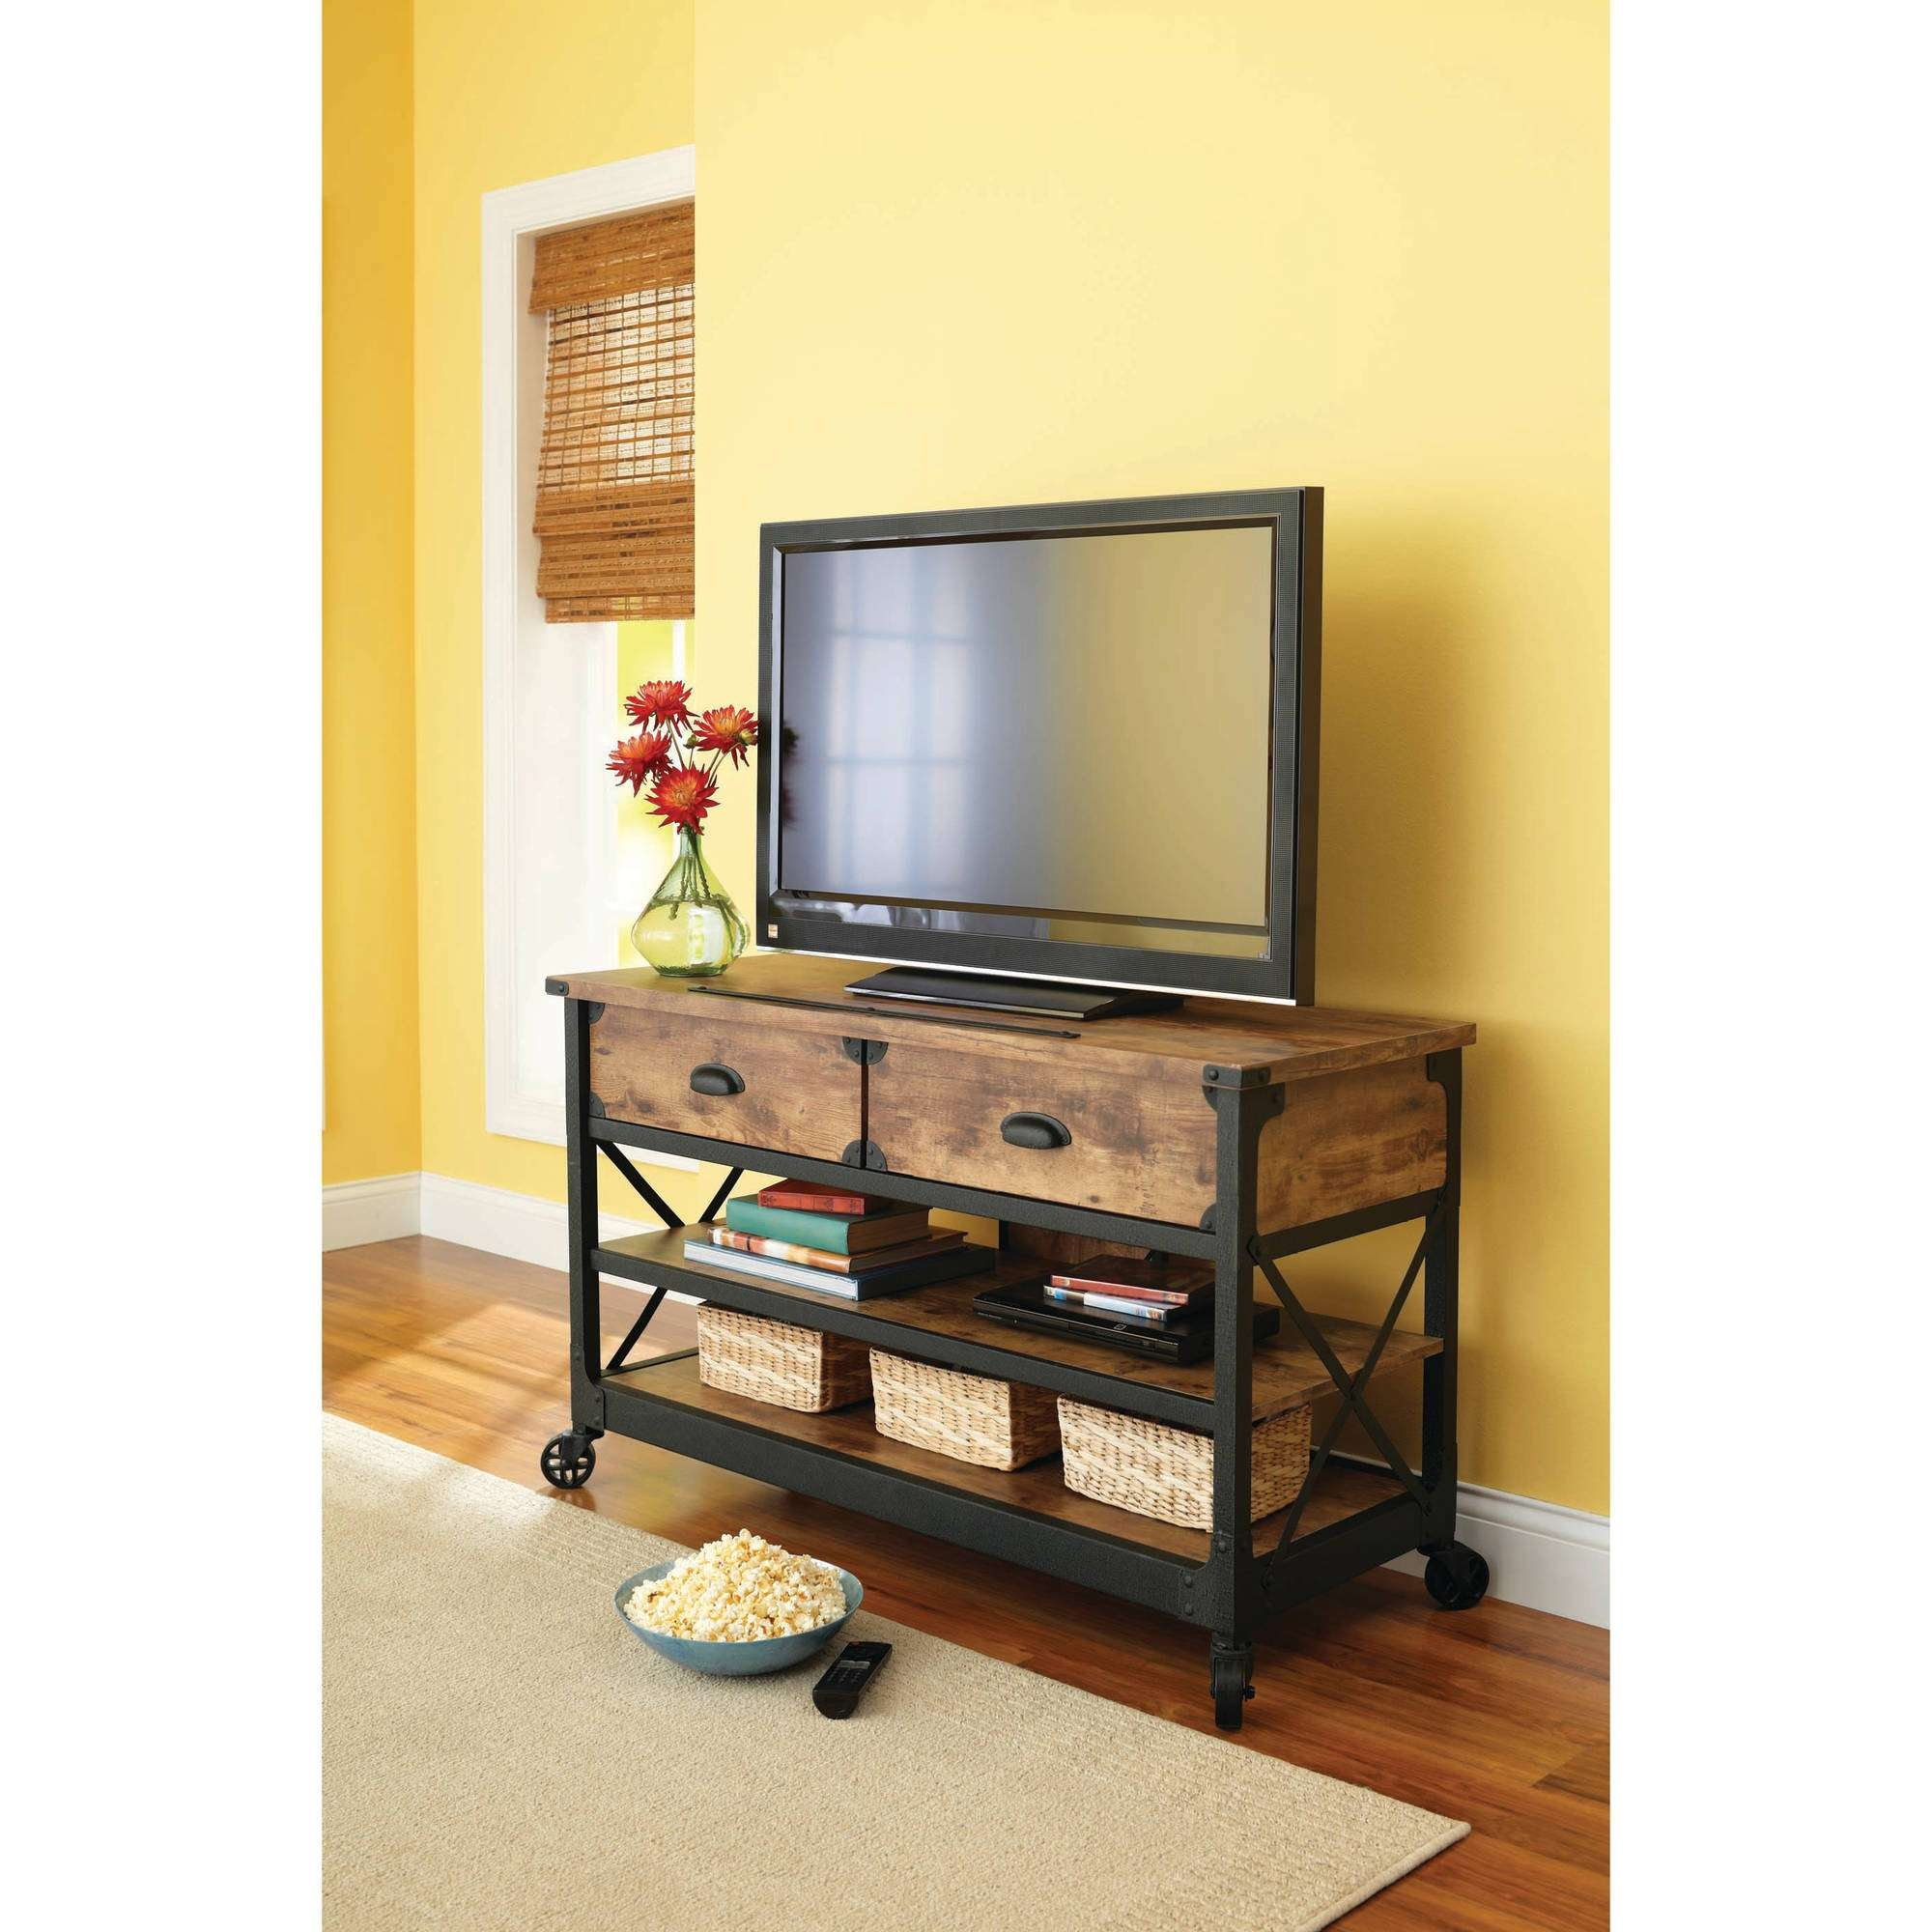 Better Homes And Gardens Rustic Country Antiqued Black/pine Panel Intended For Rustic Pine Tv Cabinets (View 2 of 20)